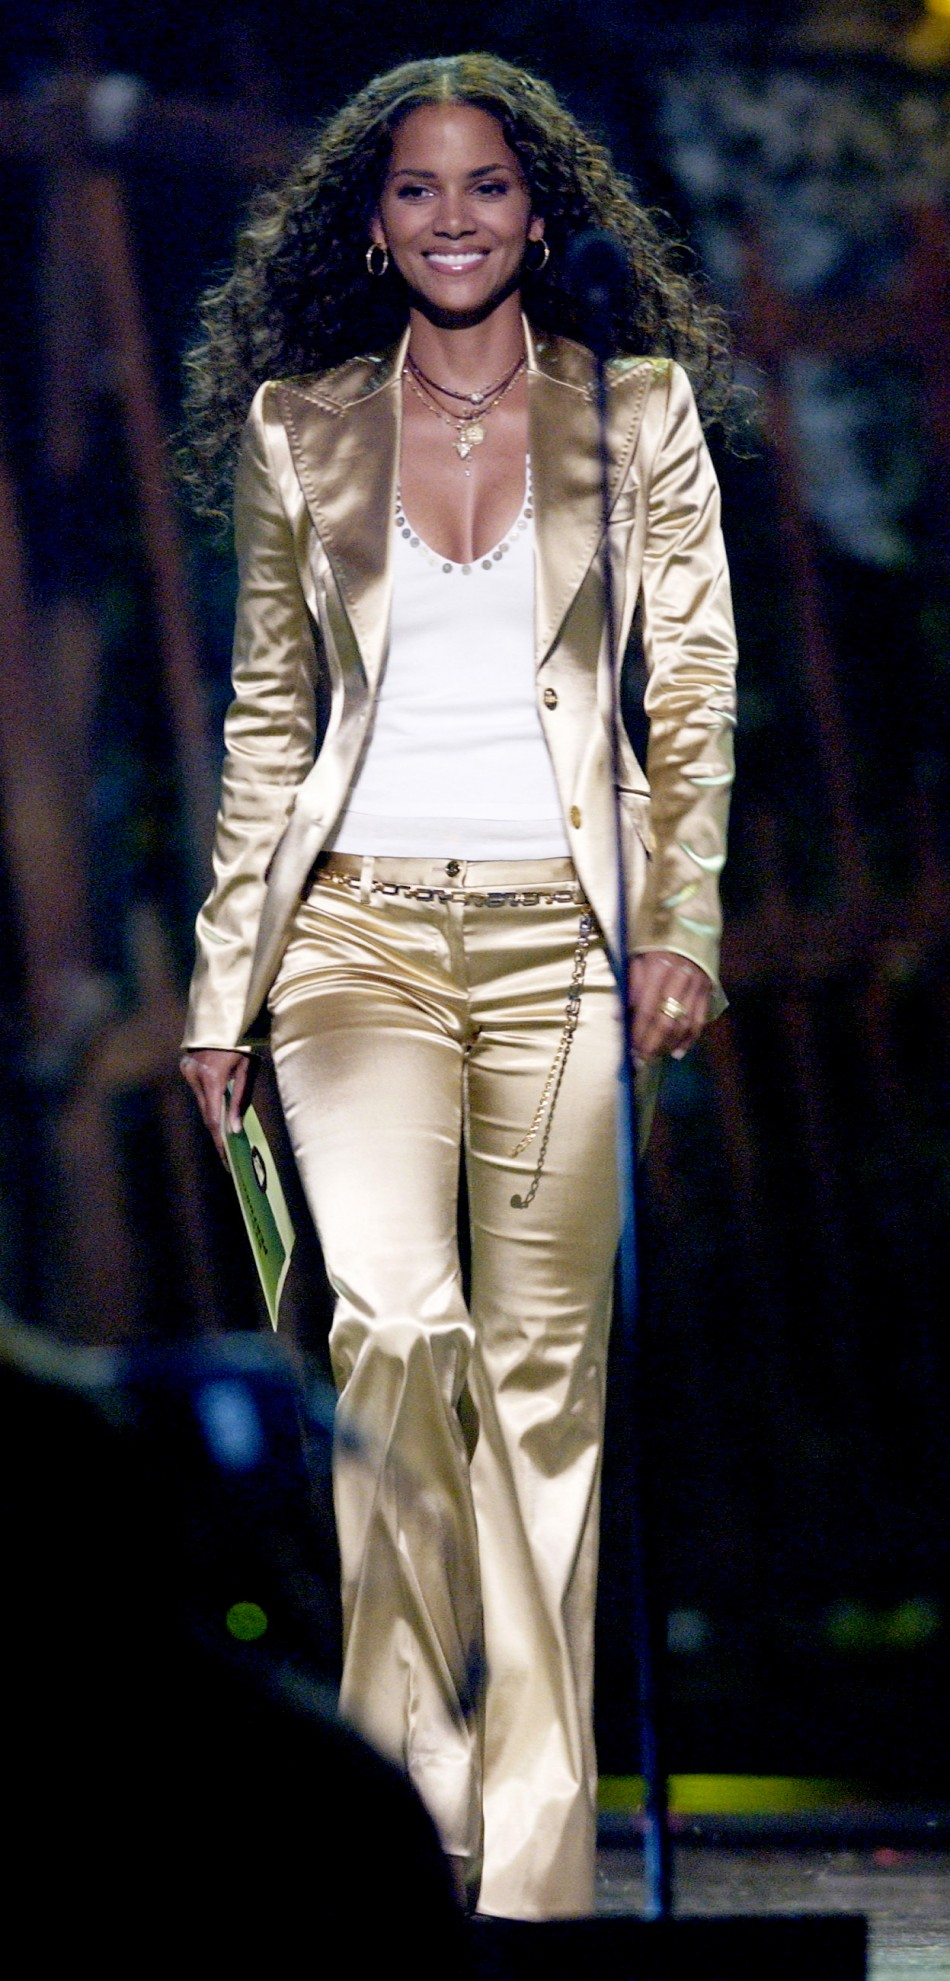 Actress Halle Berry walks on stage to present an award during the 2004 MTV Movie Awards on Saturday night, June 5, 2004 in Culver City, California